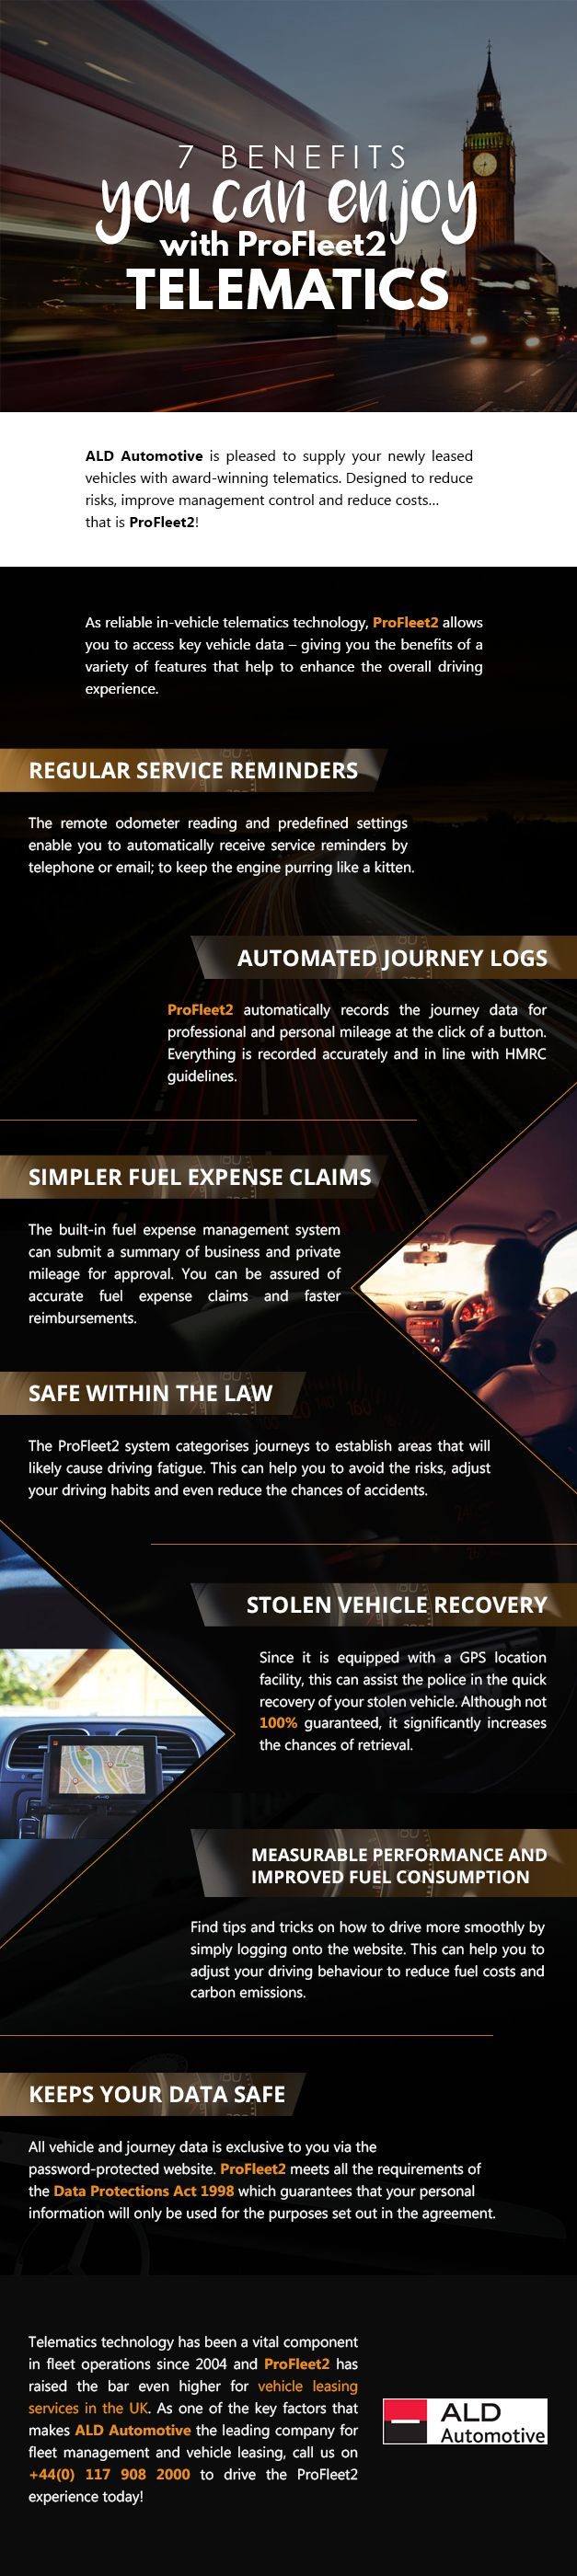 7 Benefits you can Enjoy with ProFleet2 Telematics